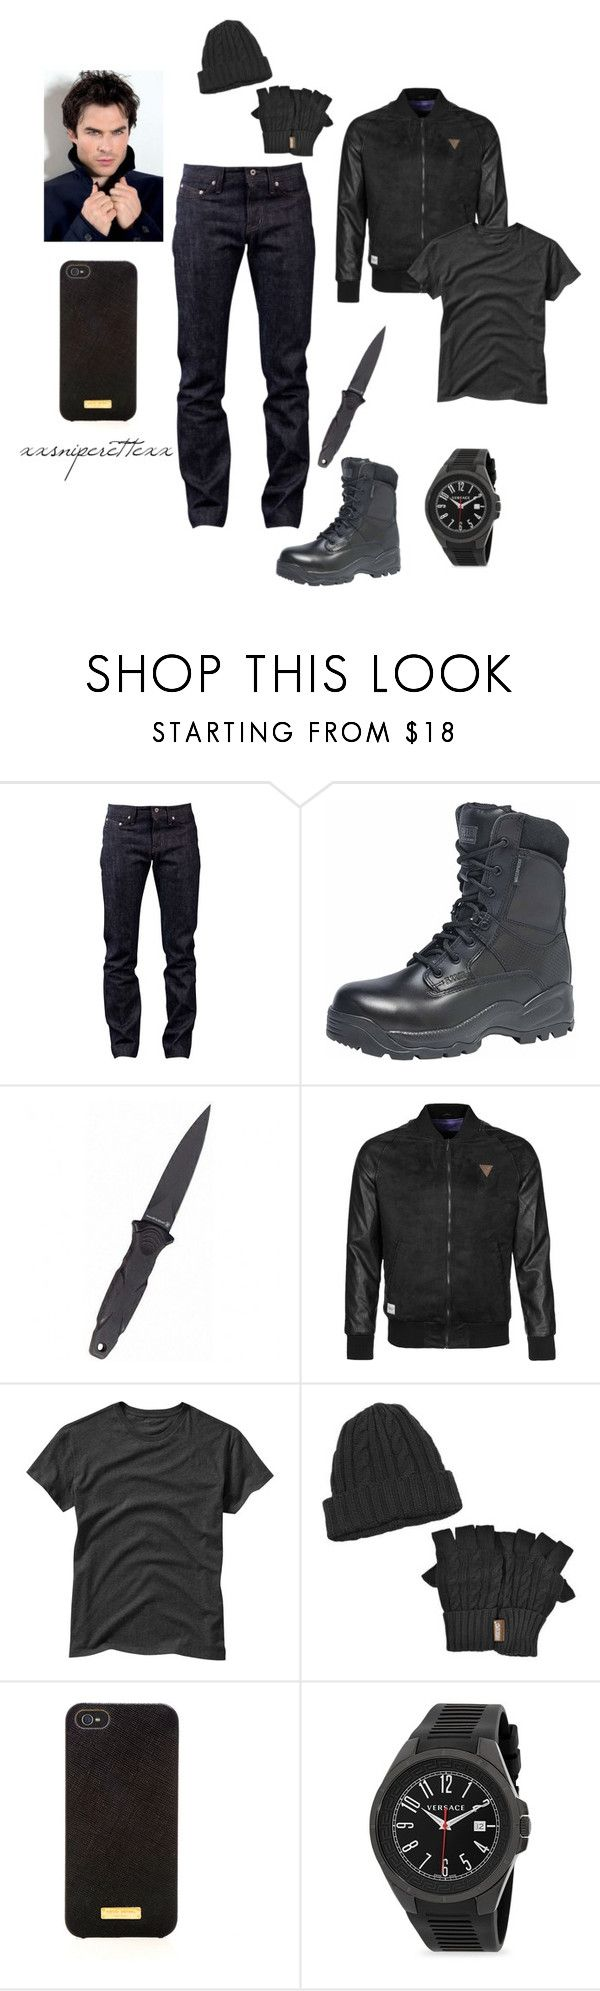 """""""Jake - January 29"""" by xxsniperettexx ❤ liked on Polyvore featuring Naked & Famous, Rocawear, Gap, Muk Luks, Henri Bendel, Versace, men's fashion and menswear"""